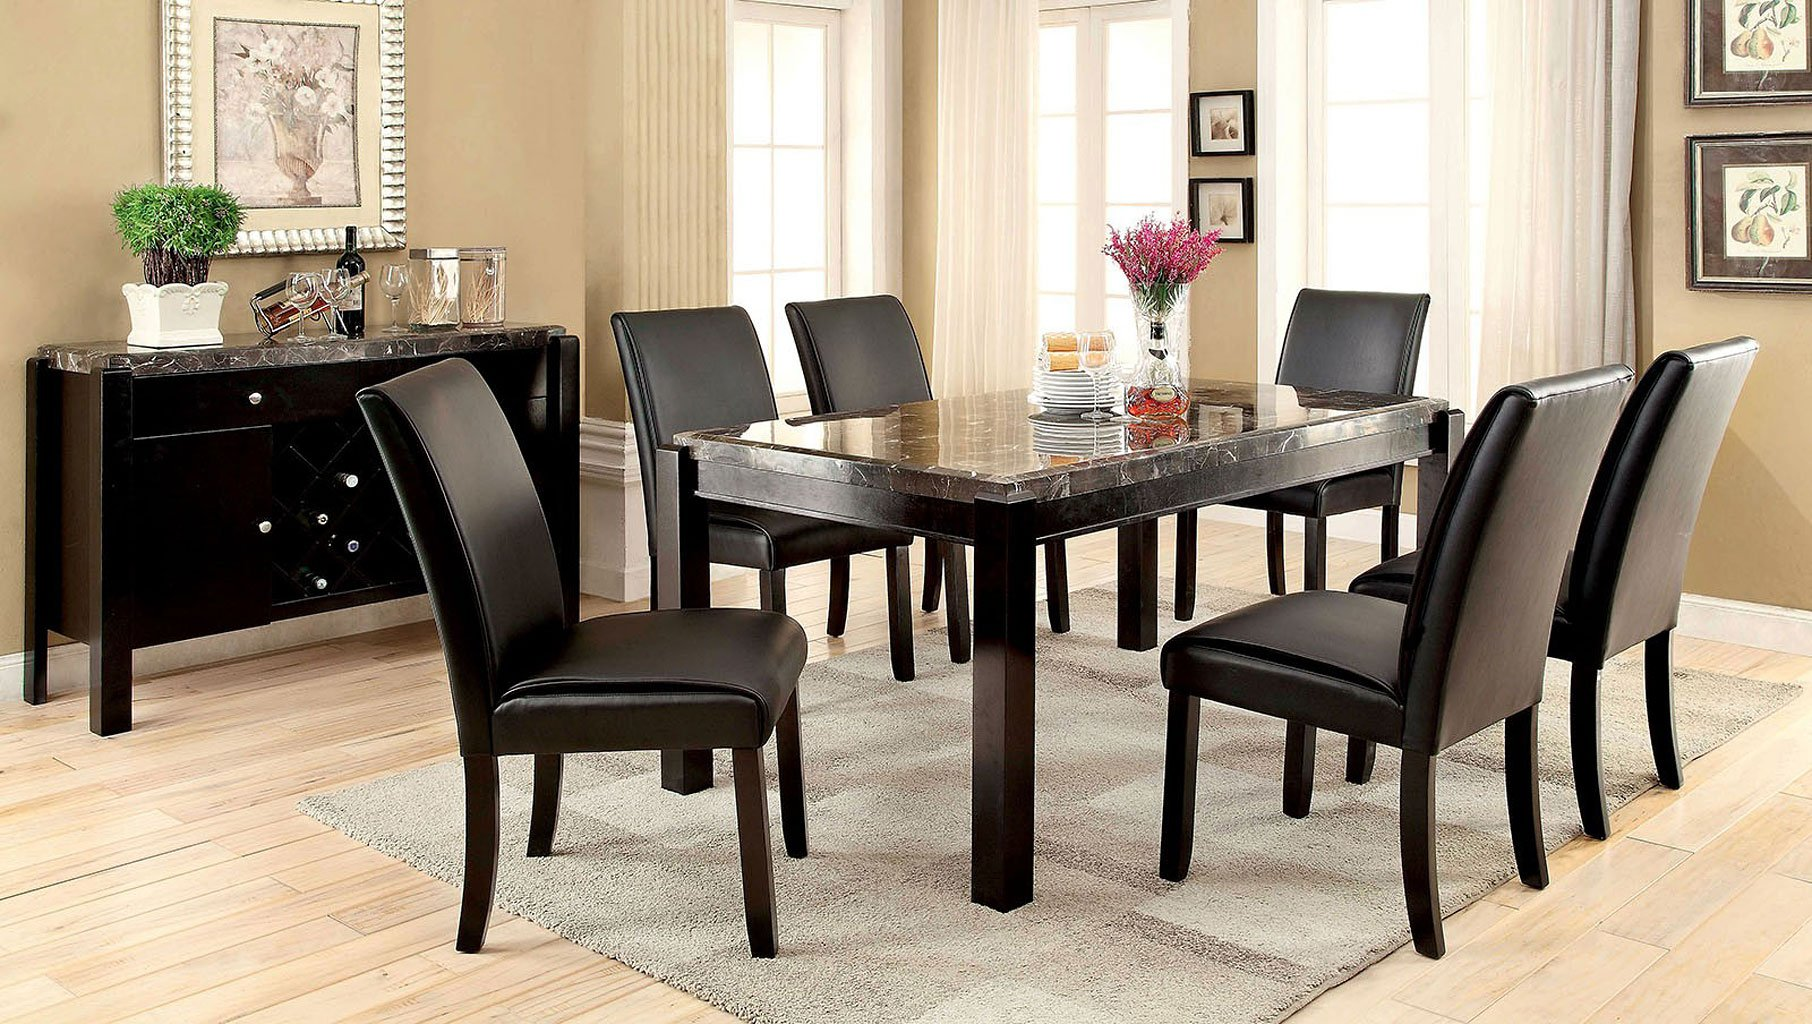 Gladstone I Black Marble Top Dining Room Set